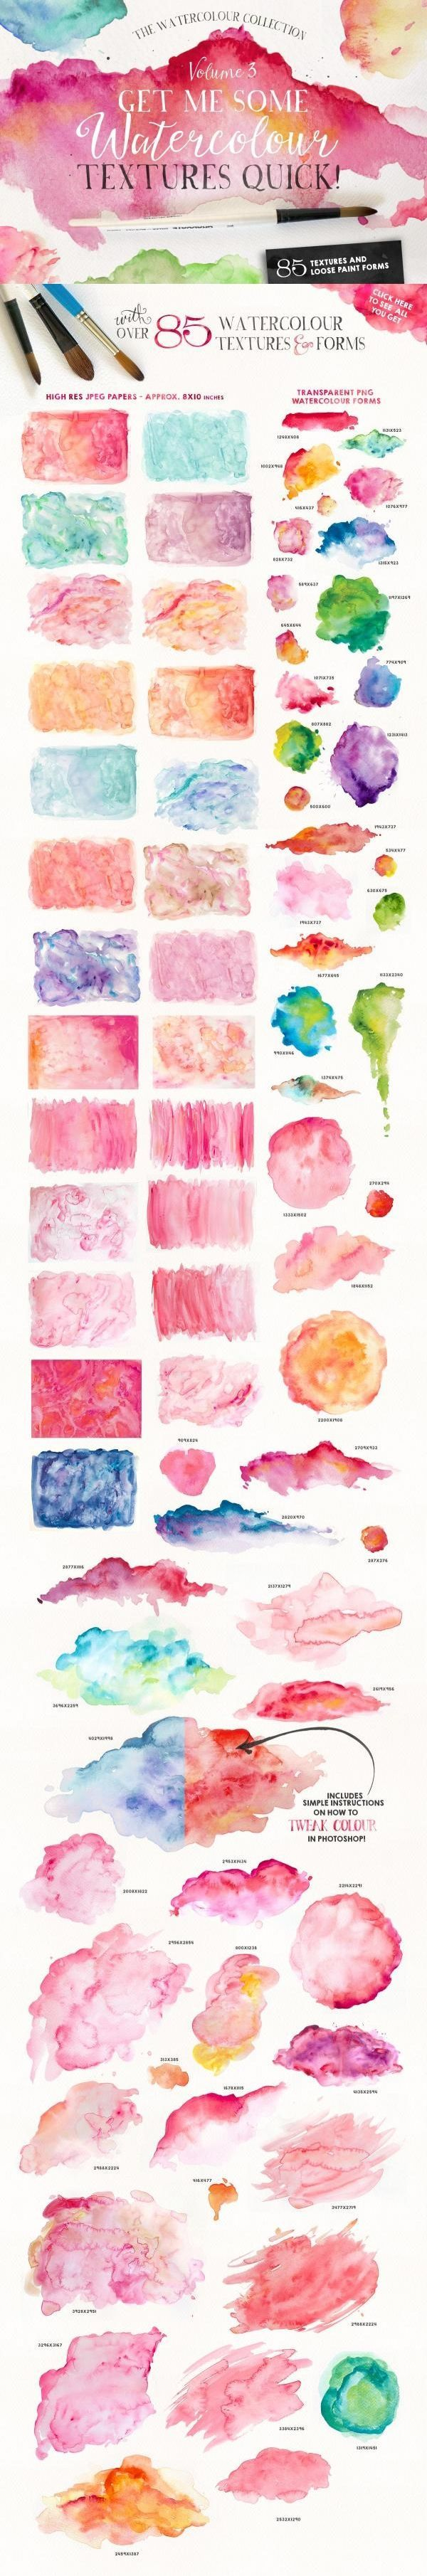 Check it out on Creative Market! https://creativemarket.com/Nickylaatz/87684-Give-Me-Watercolour-Textures-Quick!?utm_content=buffer21021&utm_medium=social&utm_source=pinterest.com&utm_campaign=buffer